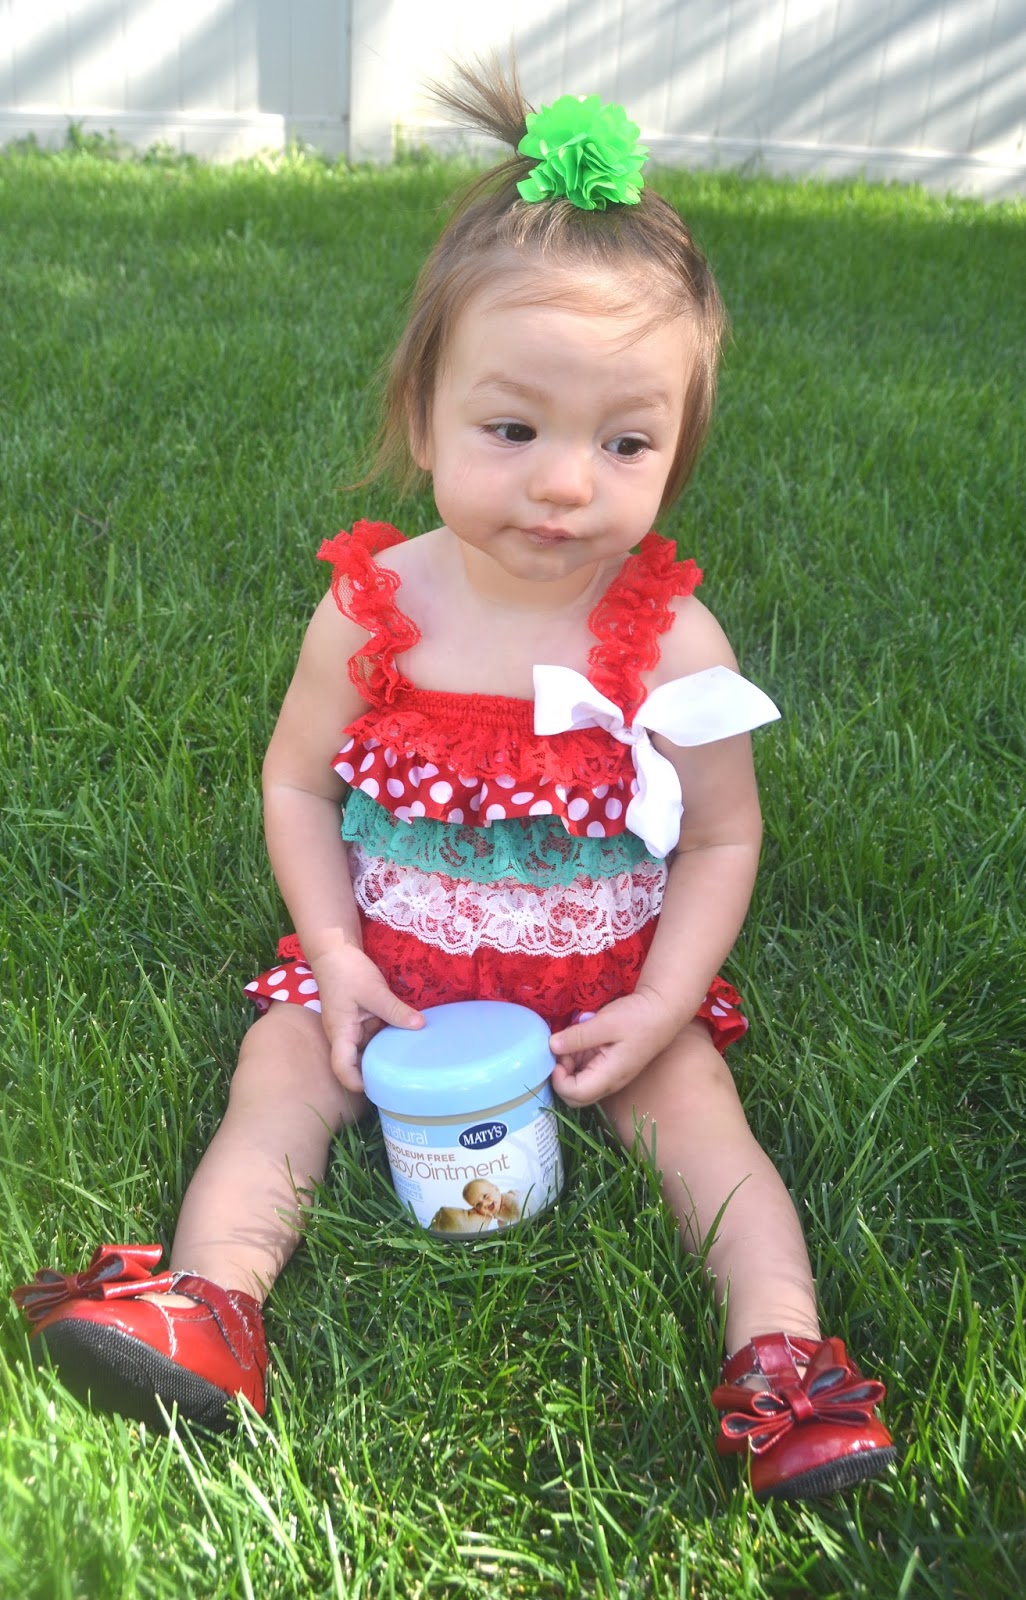 Maty S Healthy Products For Baby The Nutritionist Reviews